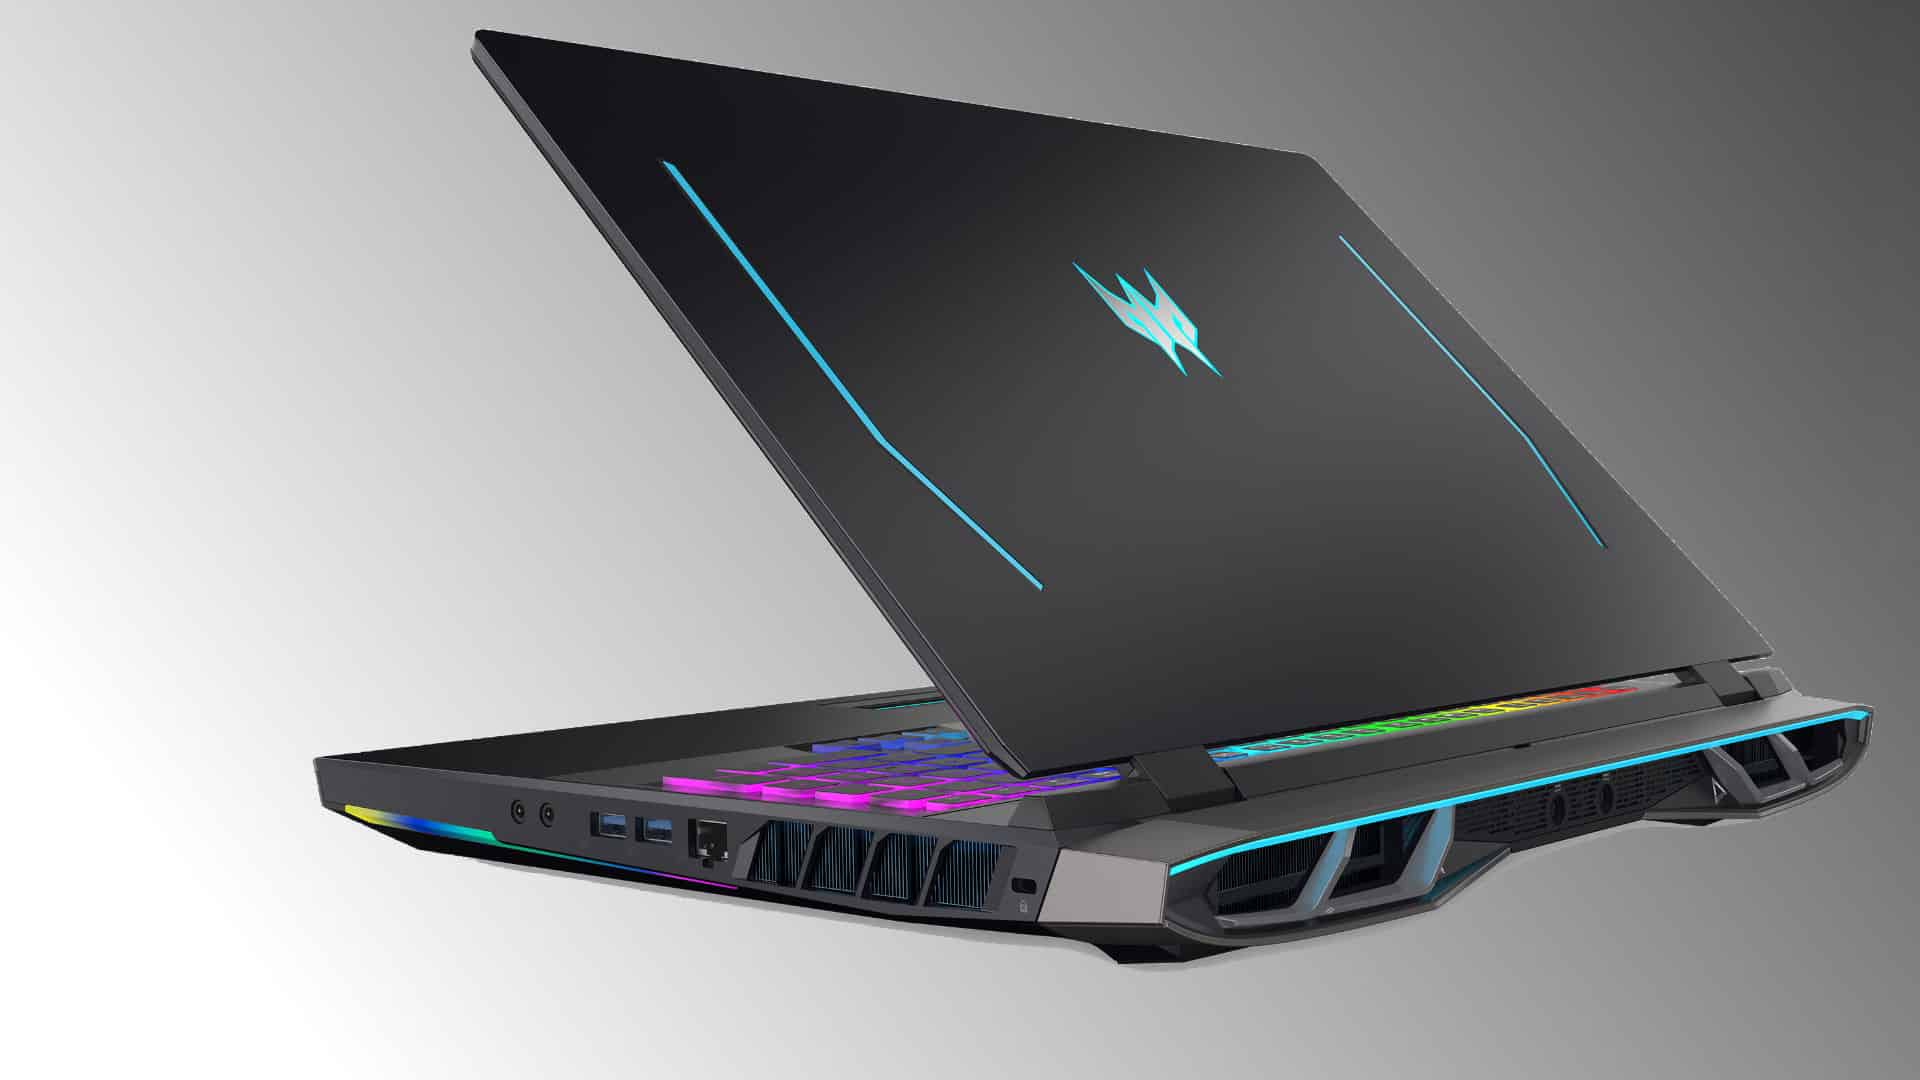 The New Acer Predator Gaming Notebooks Pack 3080s and Mini LED Displays